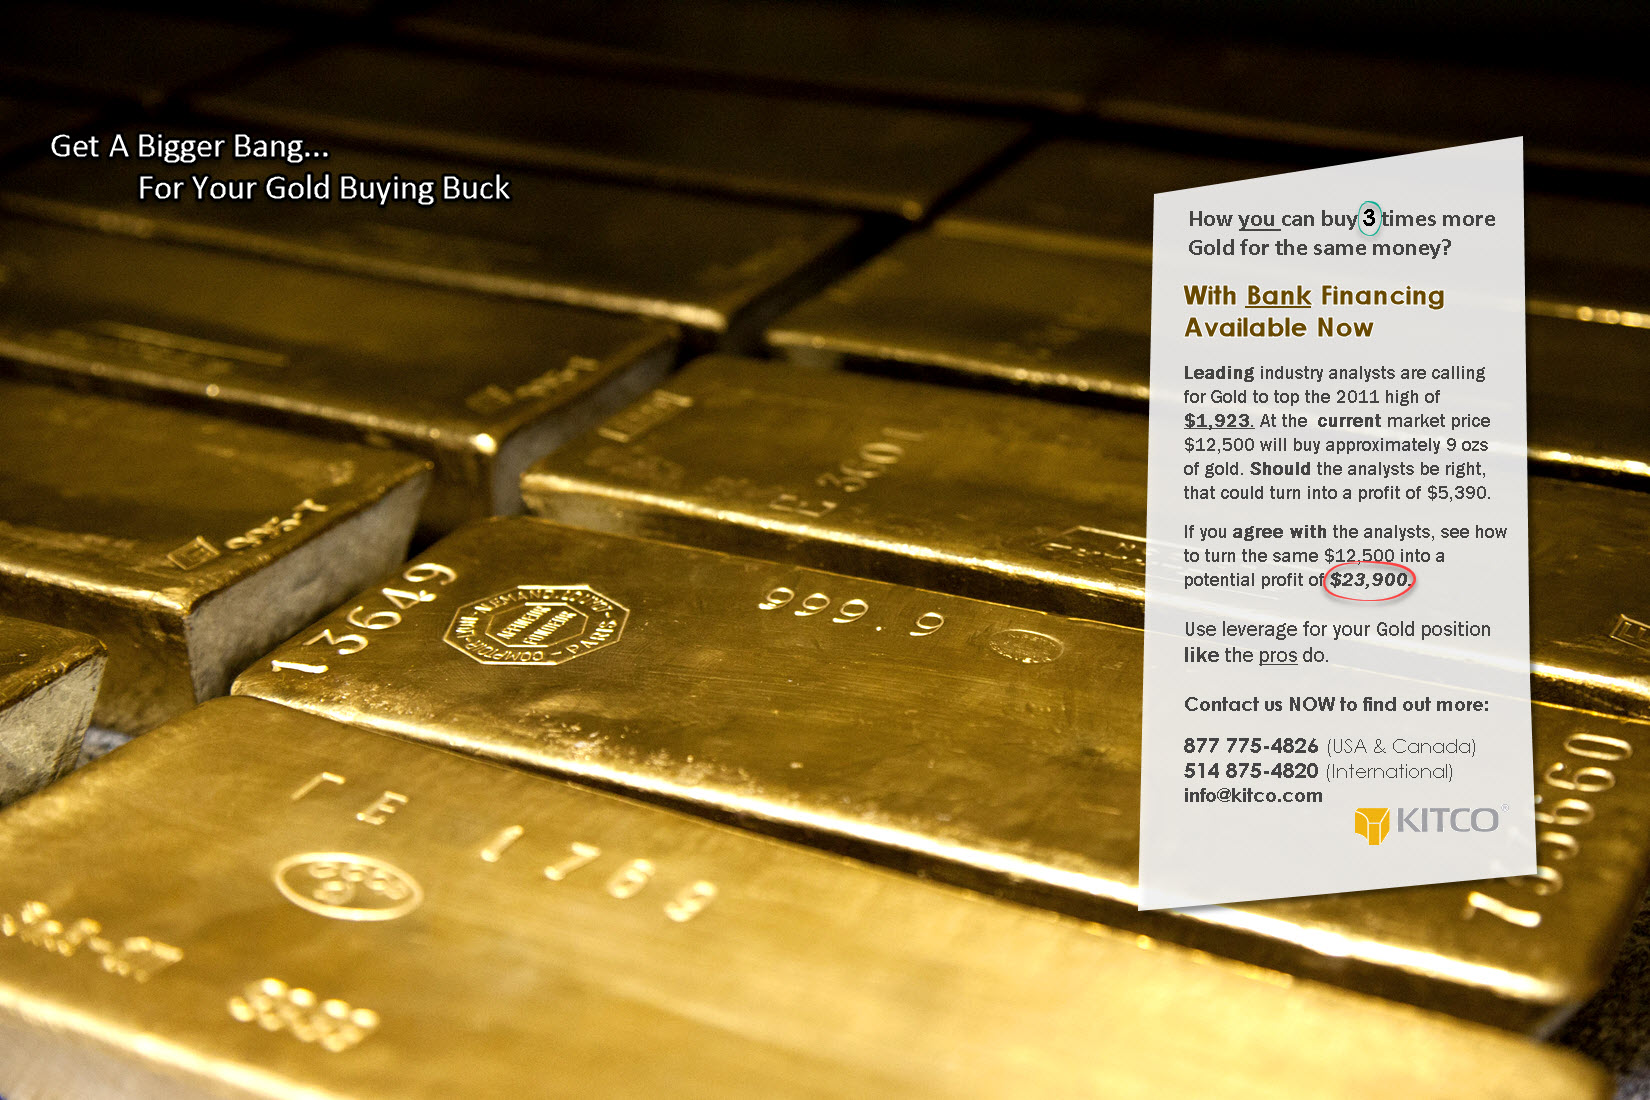 Bank Direct Financing for Your Gold Purchase